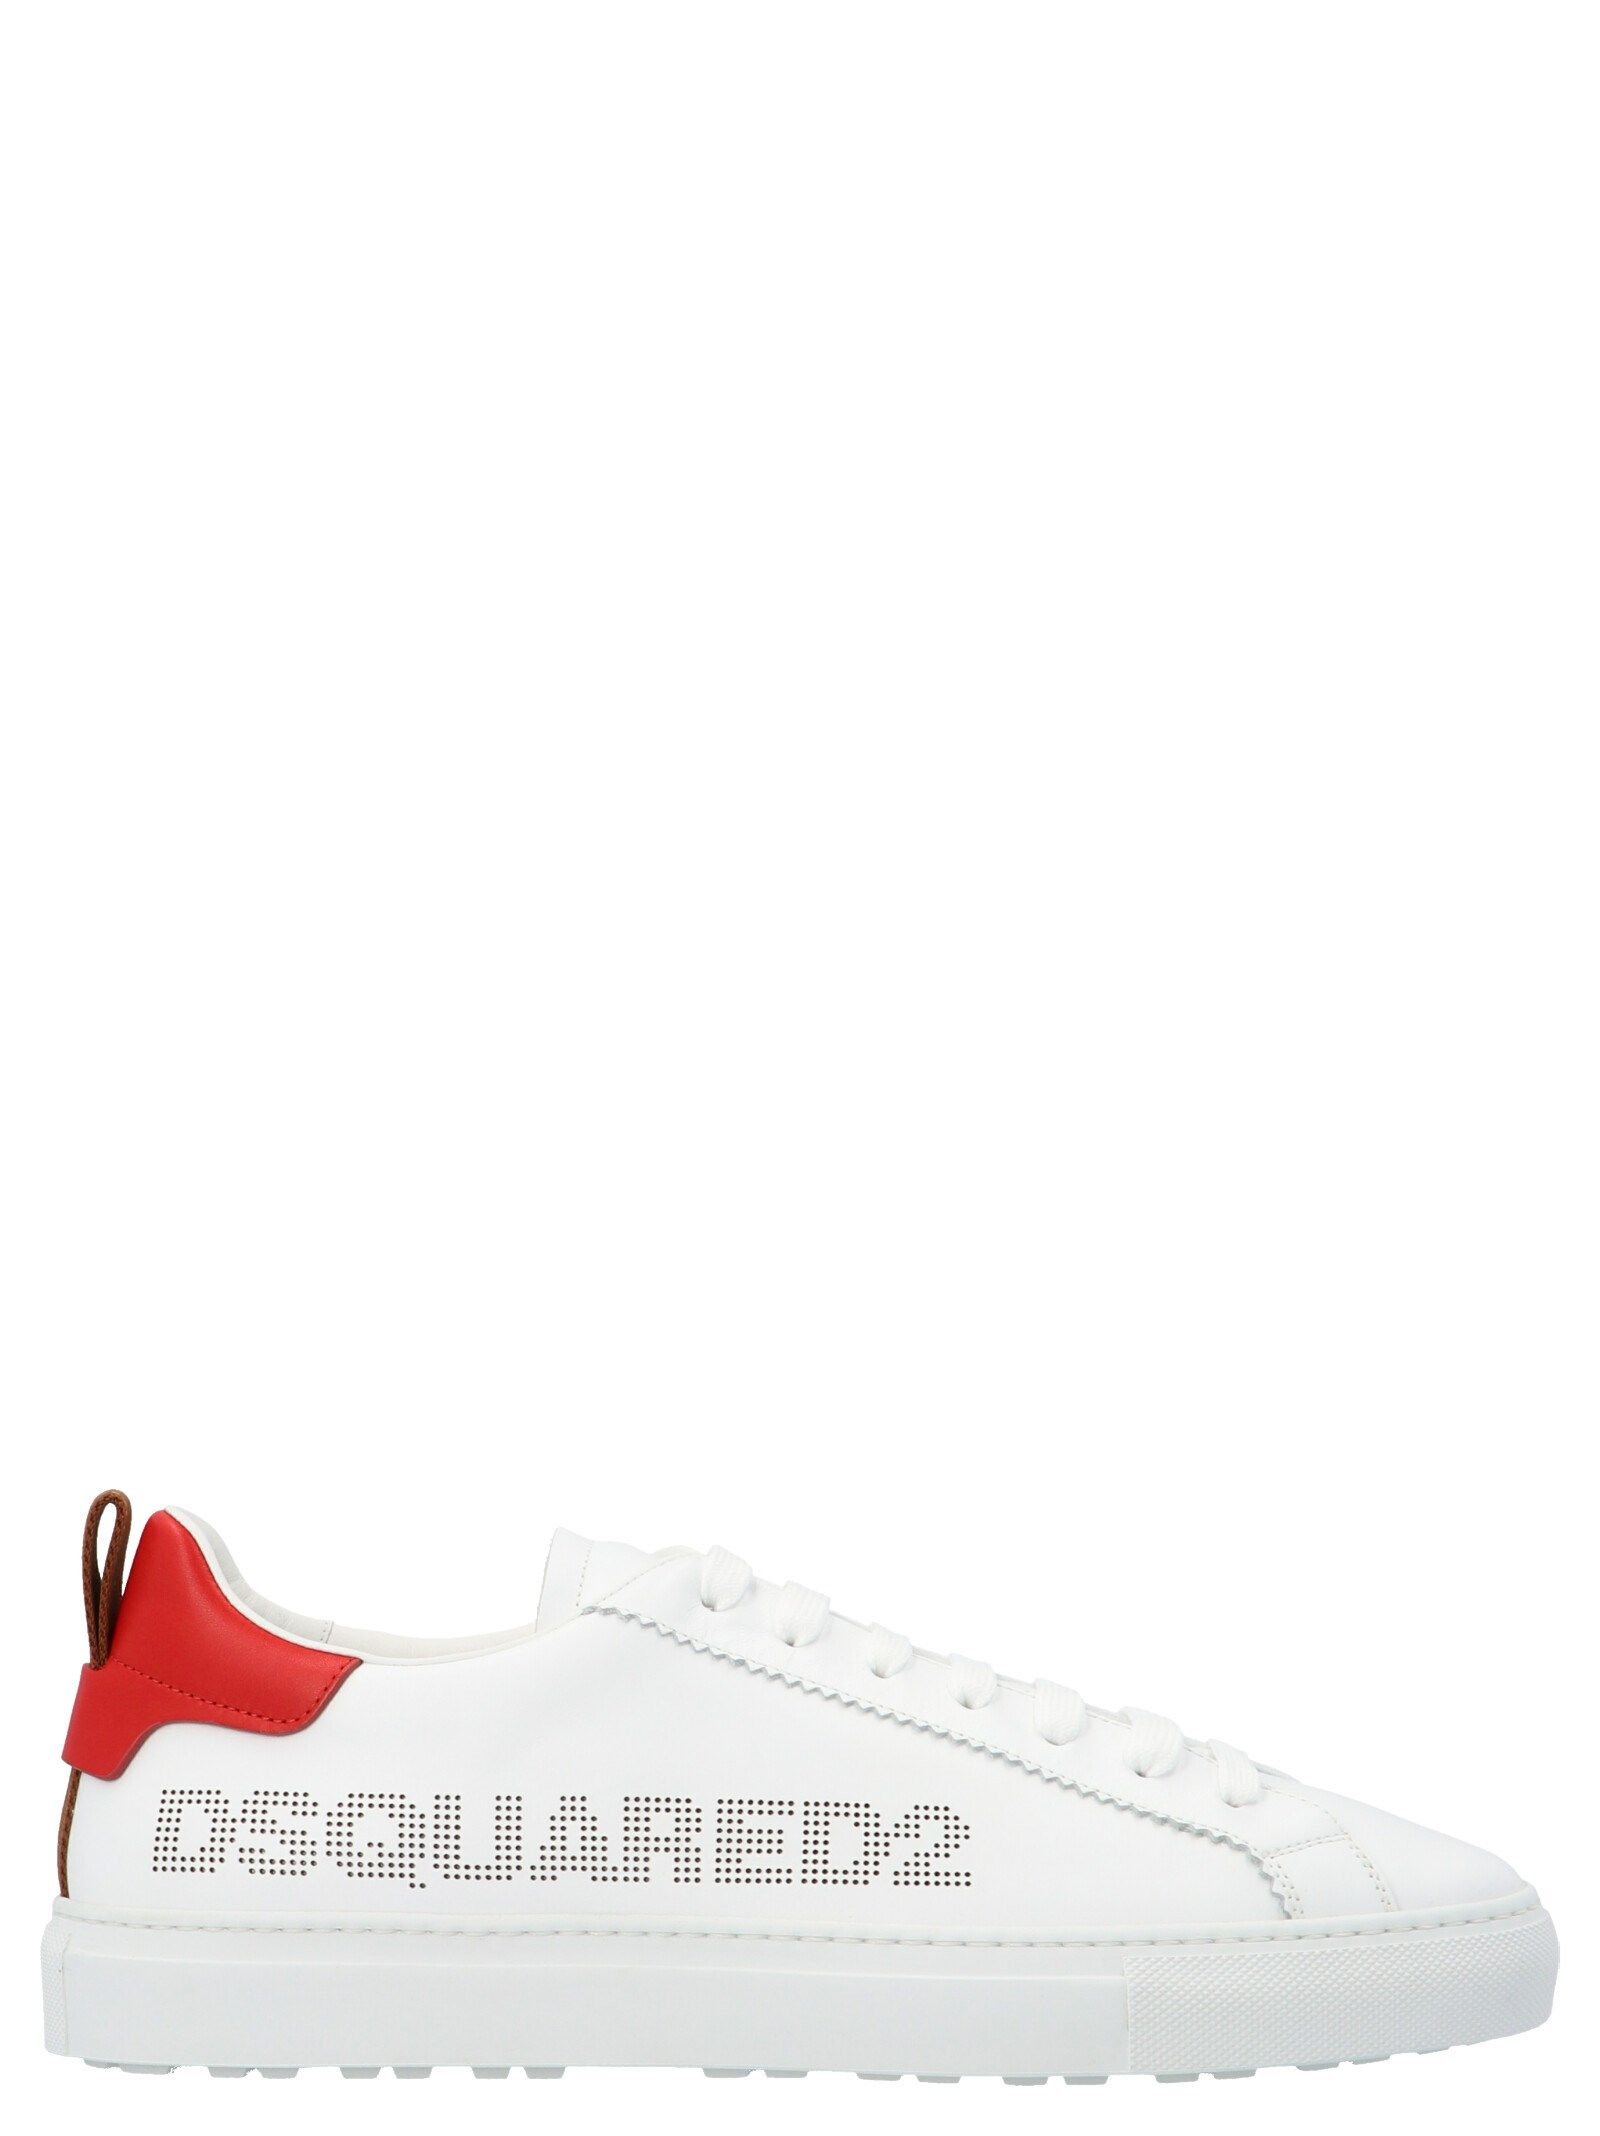 Dsquared2 DSQUARED2 MEN'S WHITE OTHER MATERIALS SNEAKERS